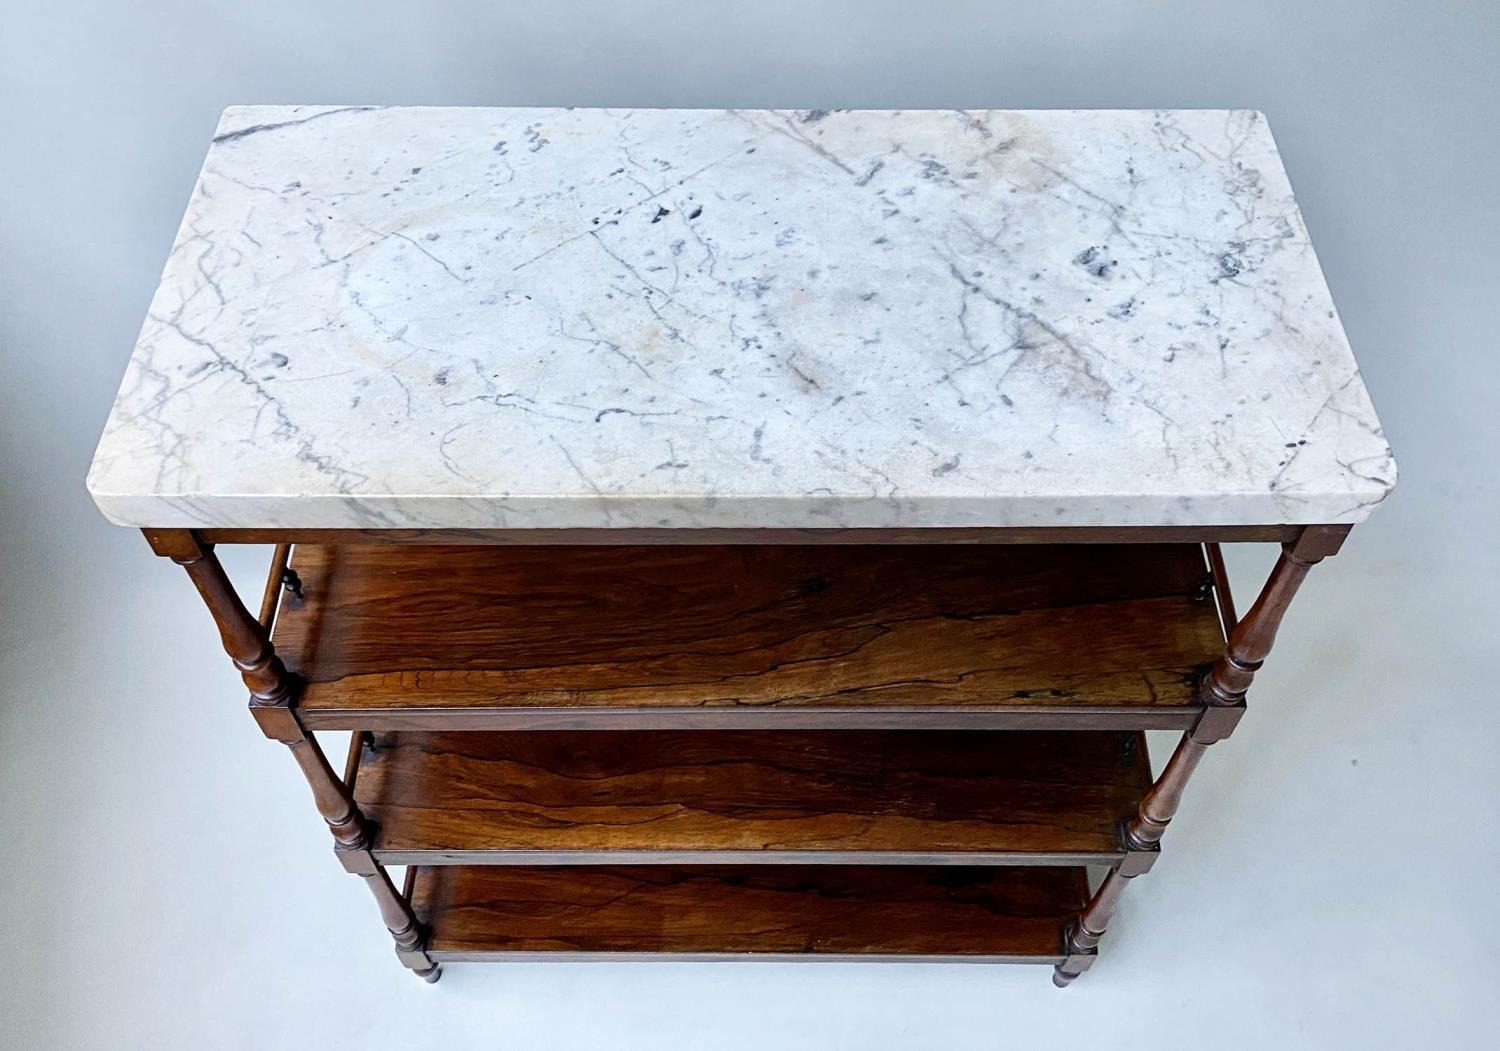 ETAGERE, early 19th century William IV rosewood with grey veined white marble top above three - Image 6 of 6